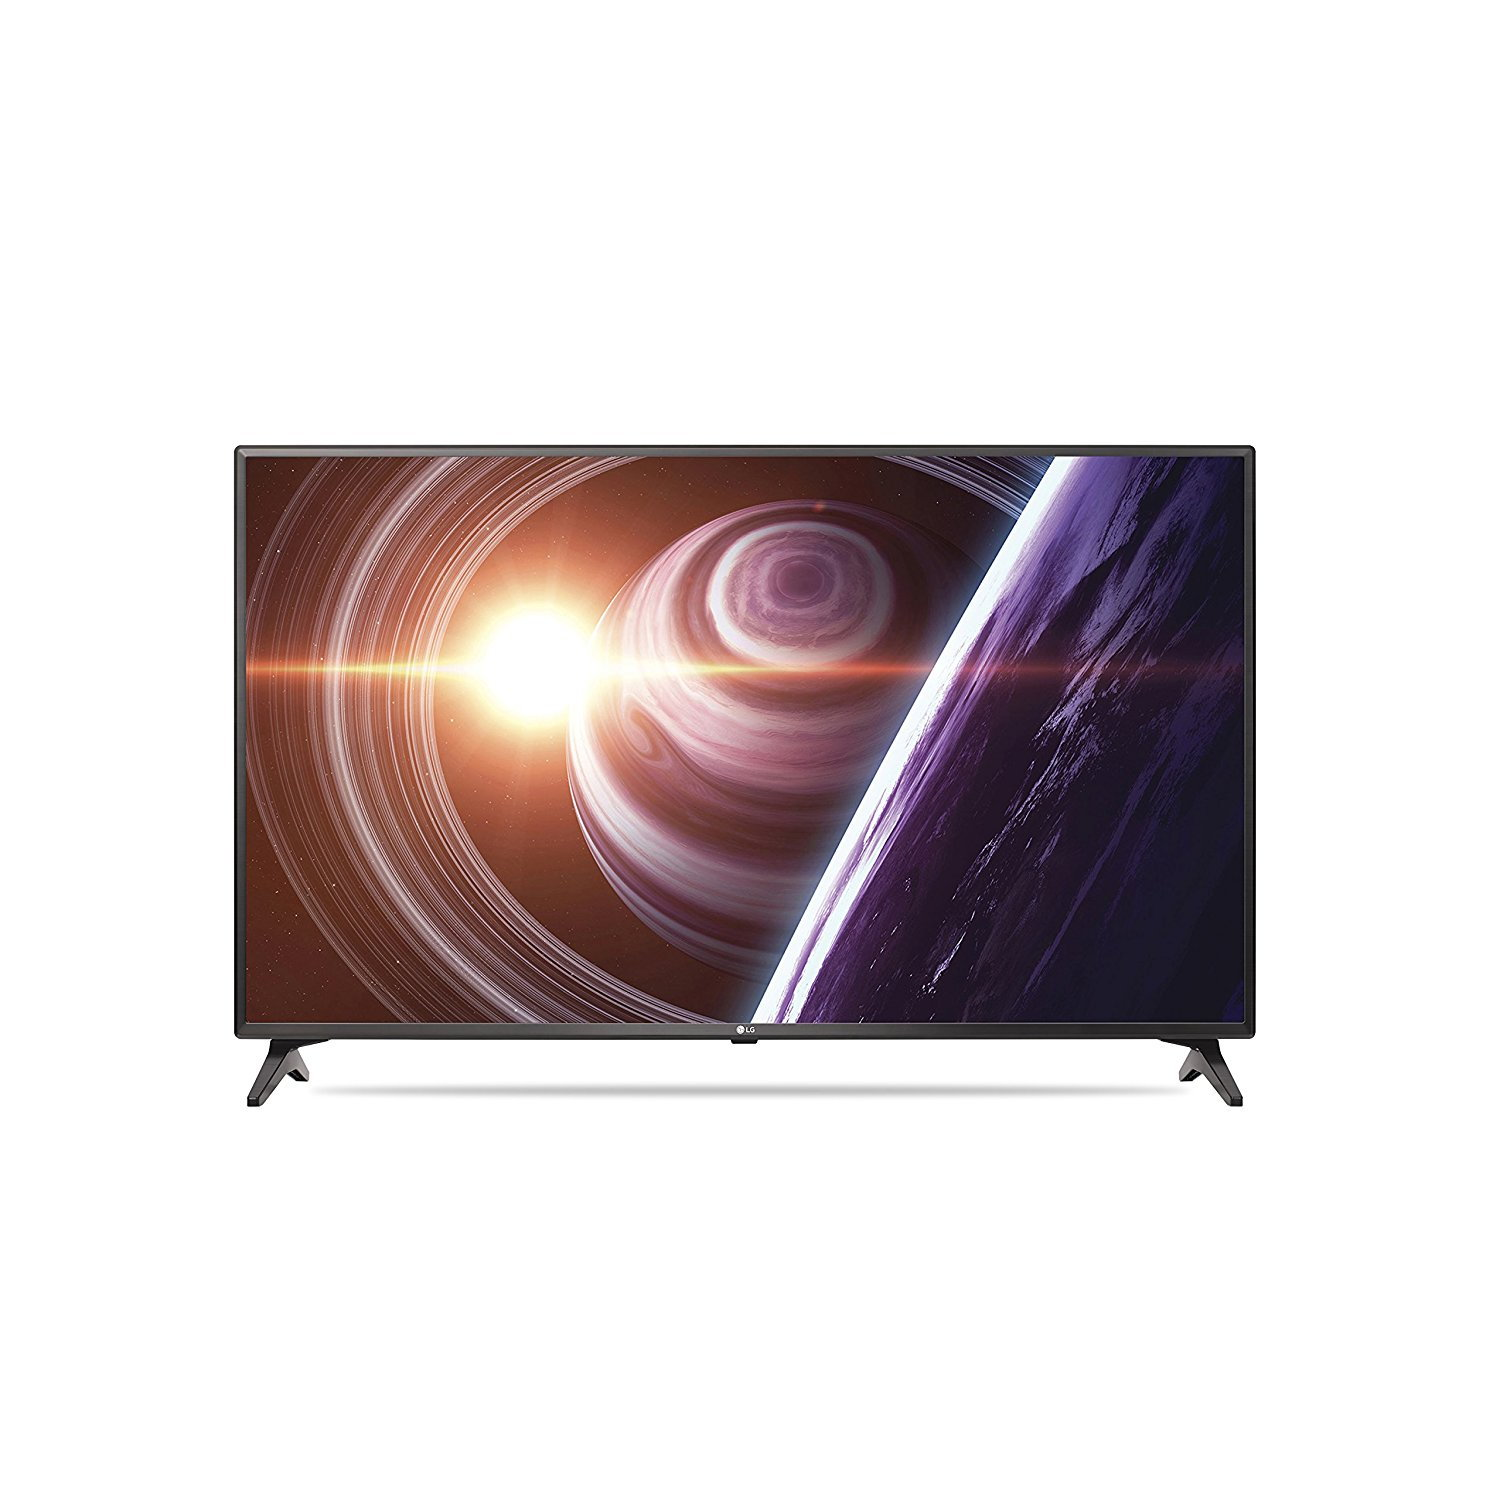 TV LED FHD LG 43LJ614V de 43 Pulgadas con Smart TV solo 229,46€